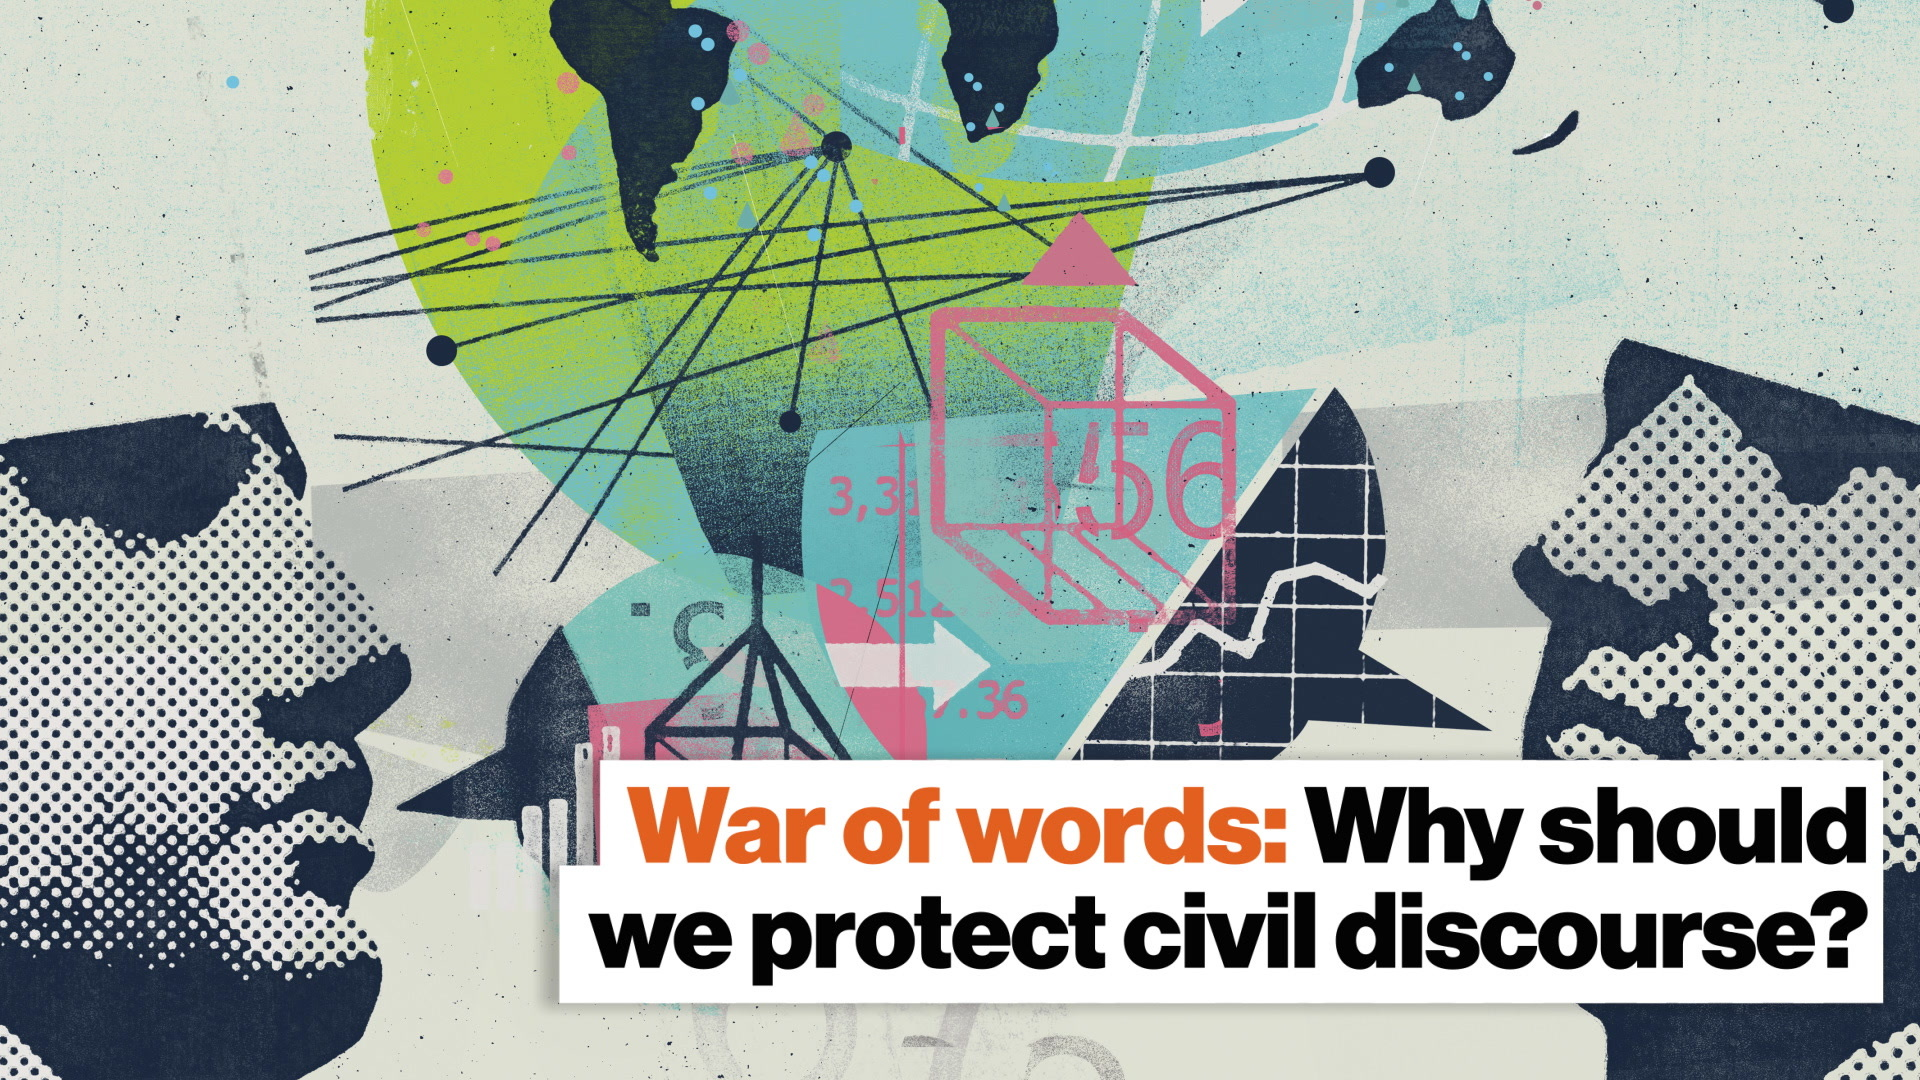 War of words: Why should we protect civil discourse?